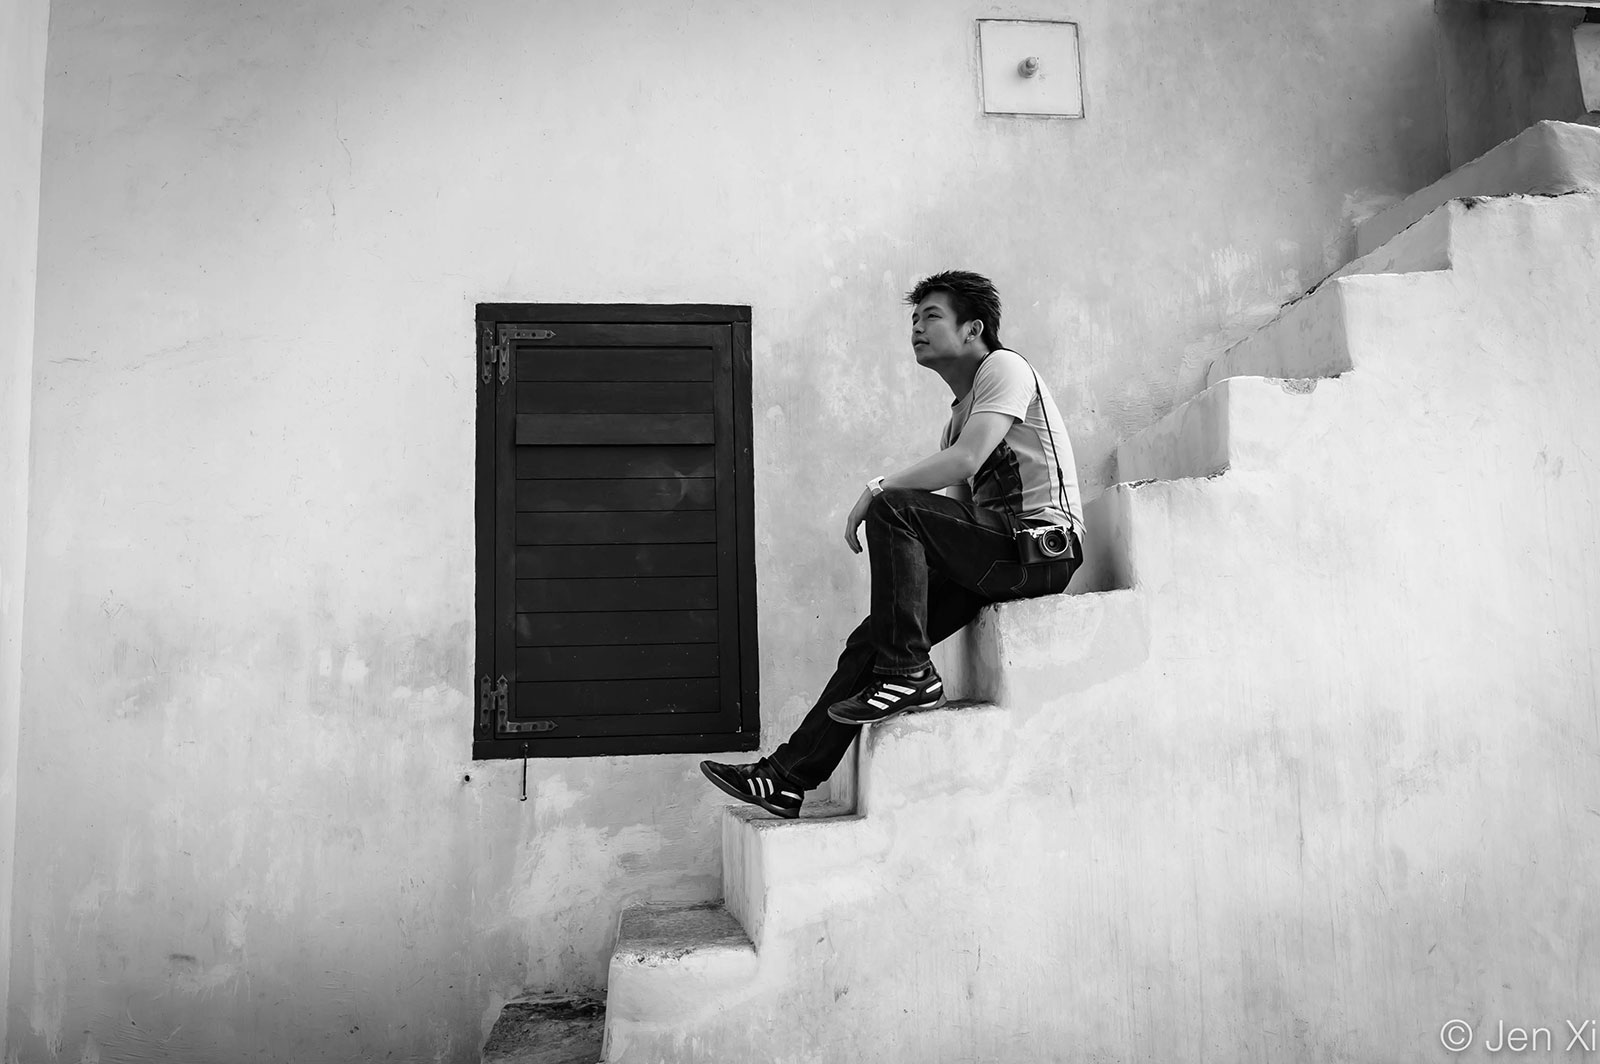 Man sitting on a flight of stairs